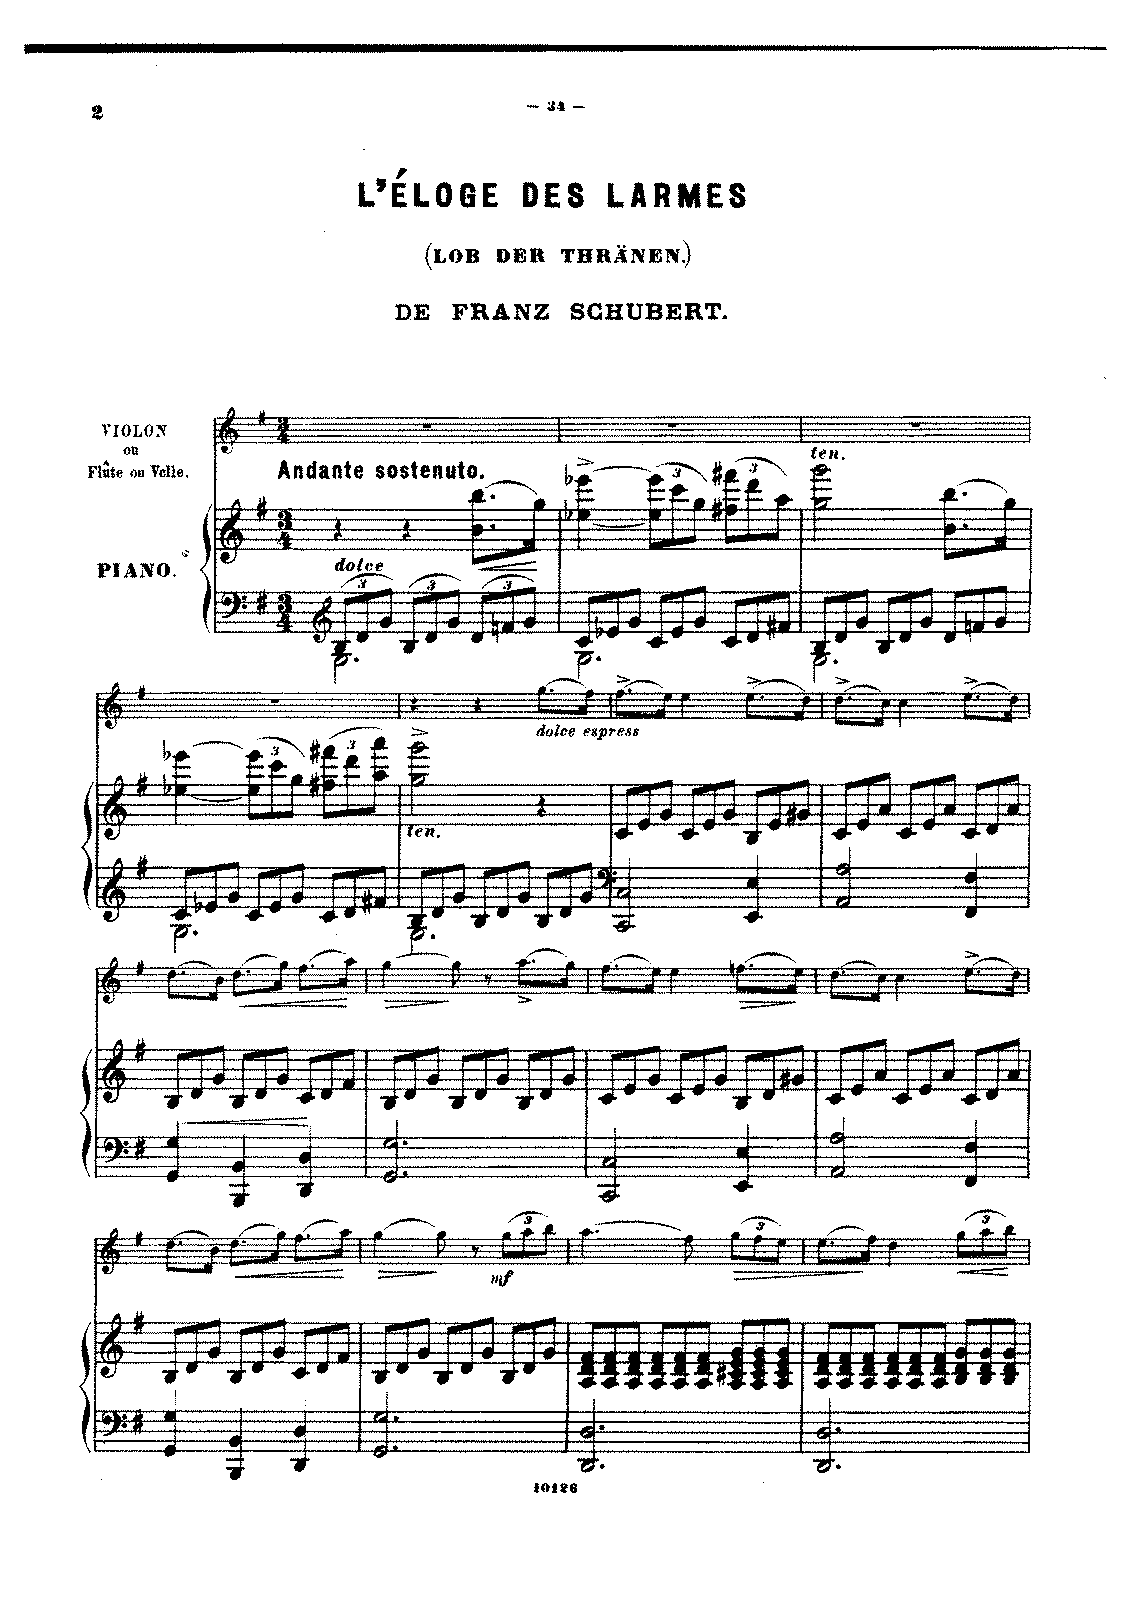 PMLP25883-Schubert - LEloge Des Larmes for Cello and Piano score.pdf